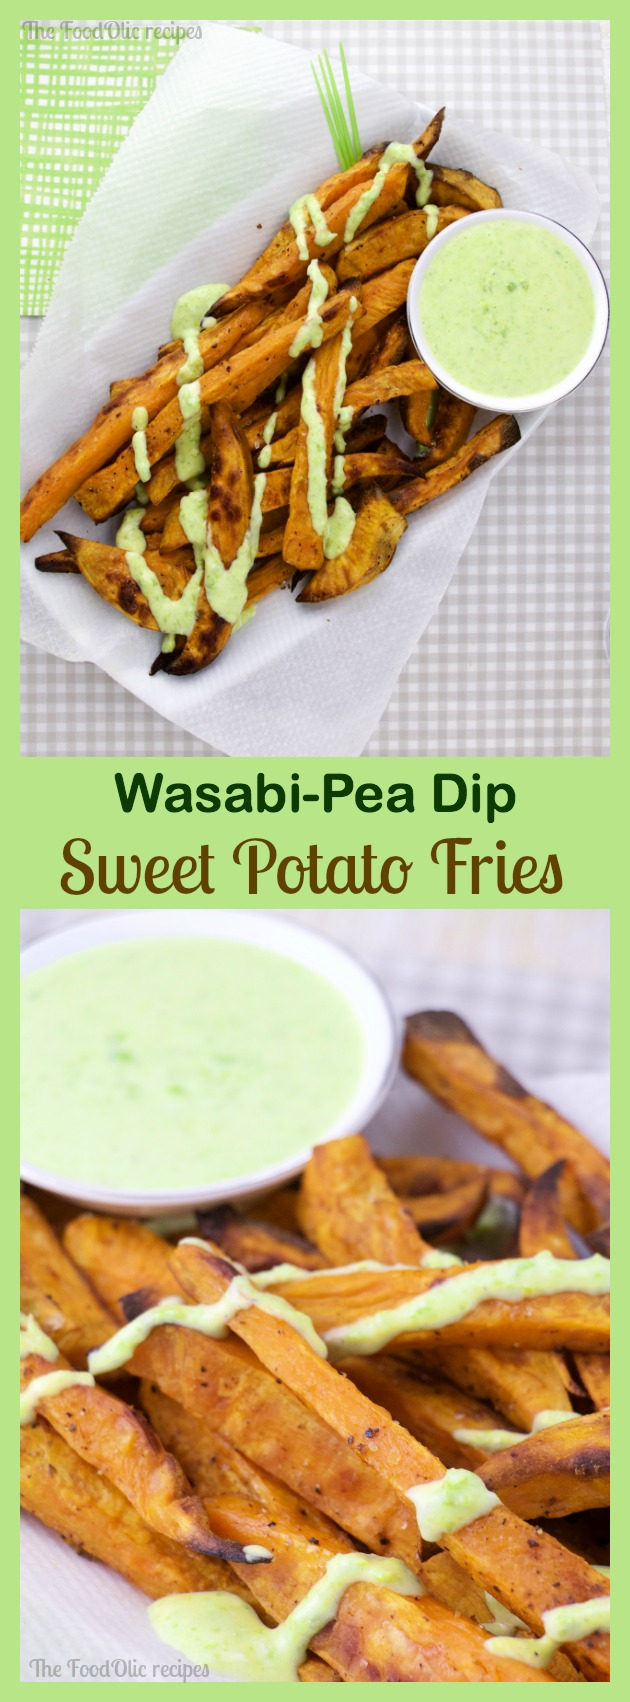 Sweet Potato Fries with a Wasabi-Pea Dip is a dynamic duo of colors and flavors. The sweetness of the fries is balanced to perfection with the spicy green wasabi-pea dip.